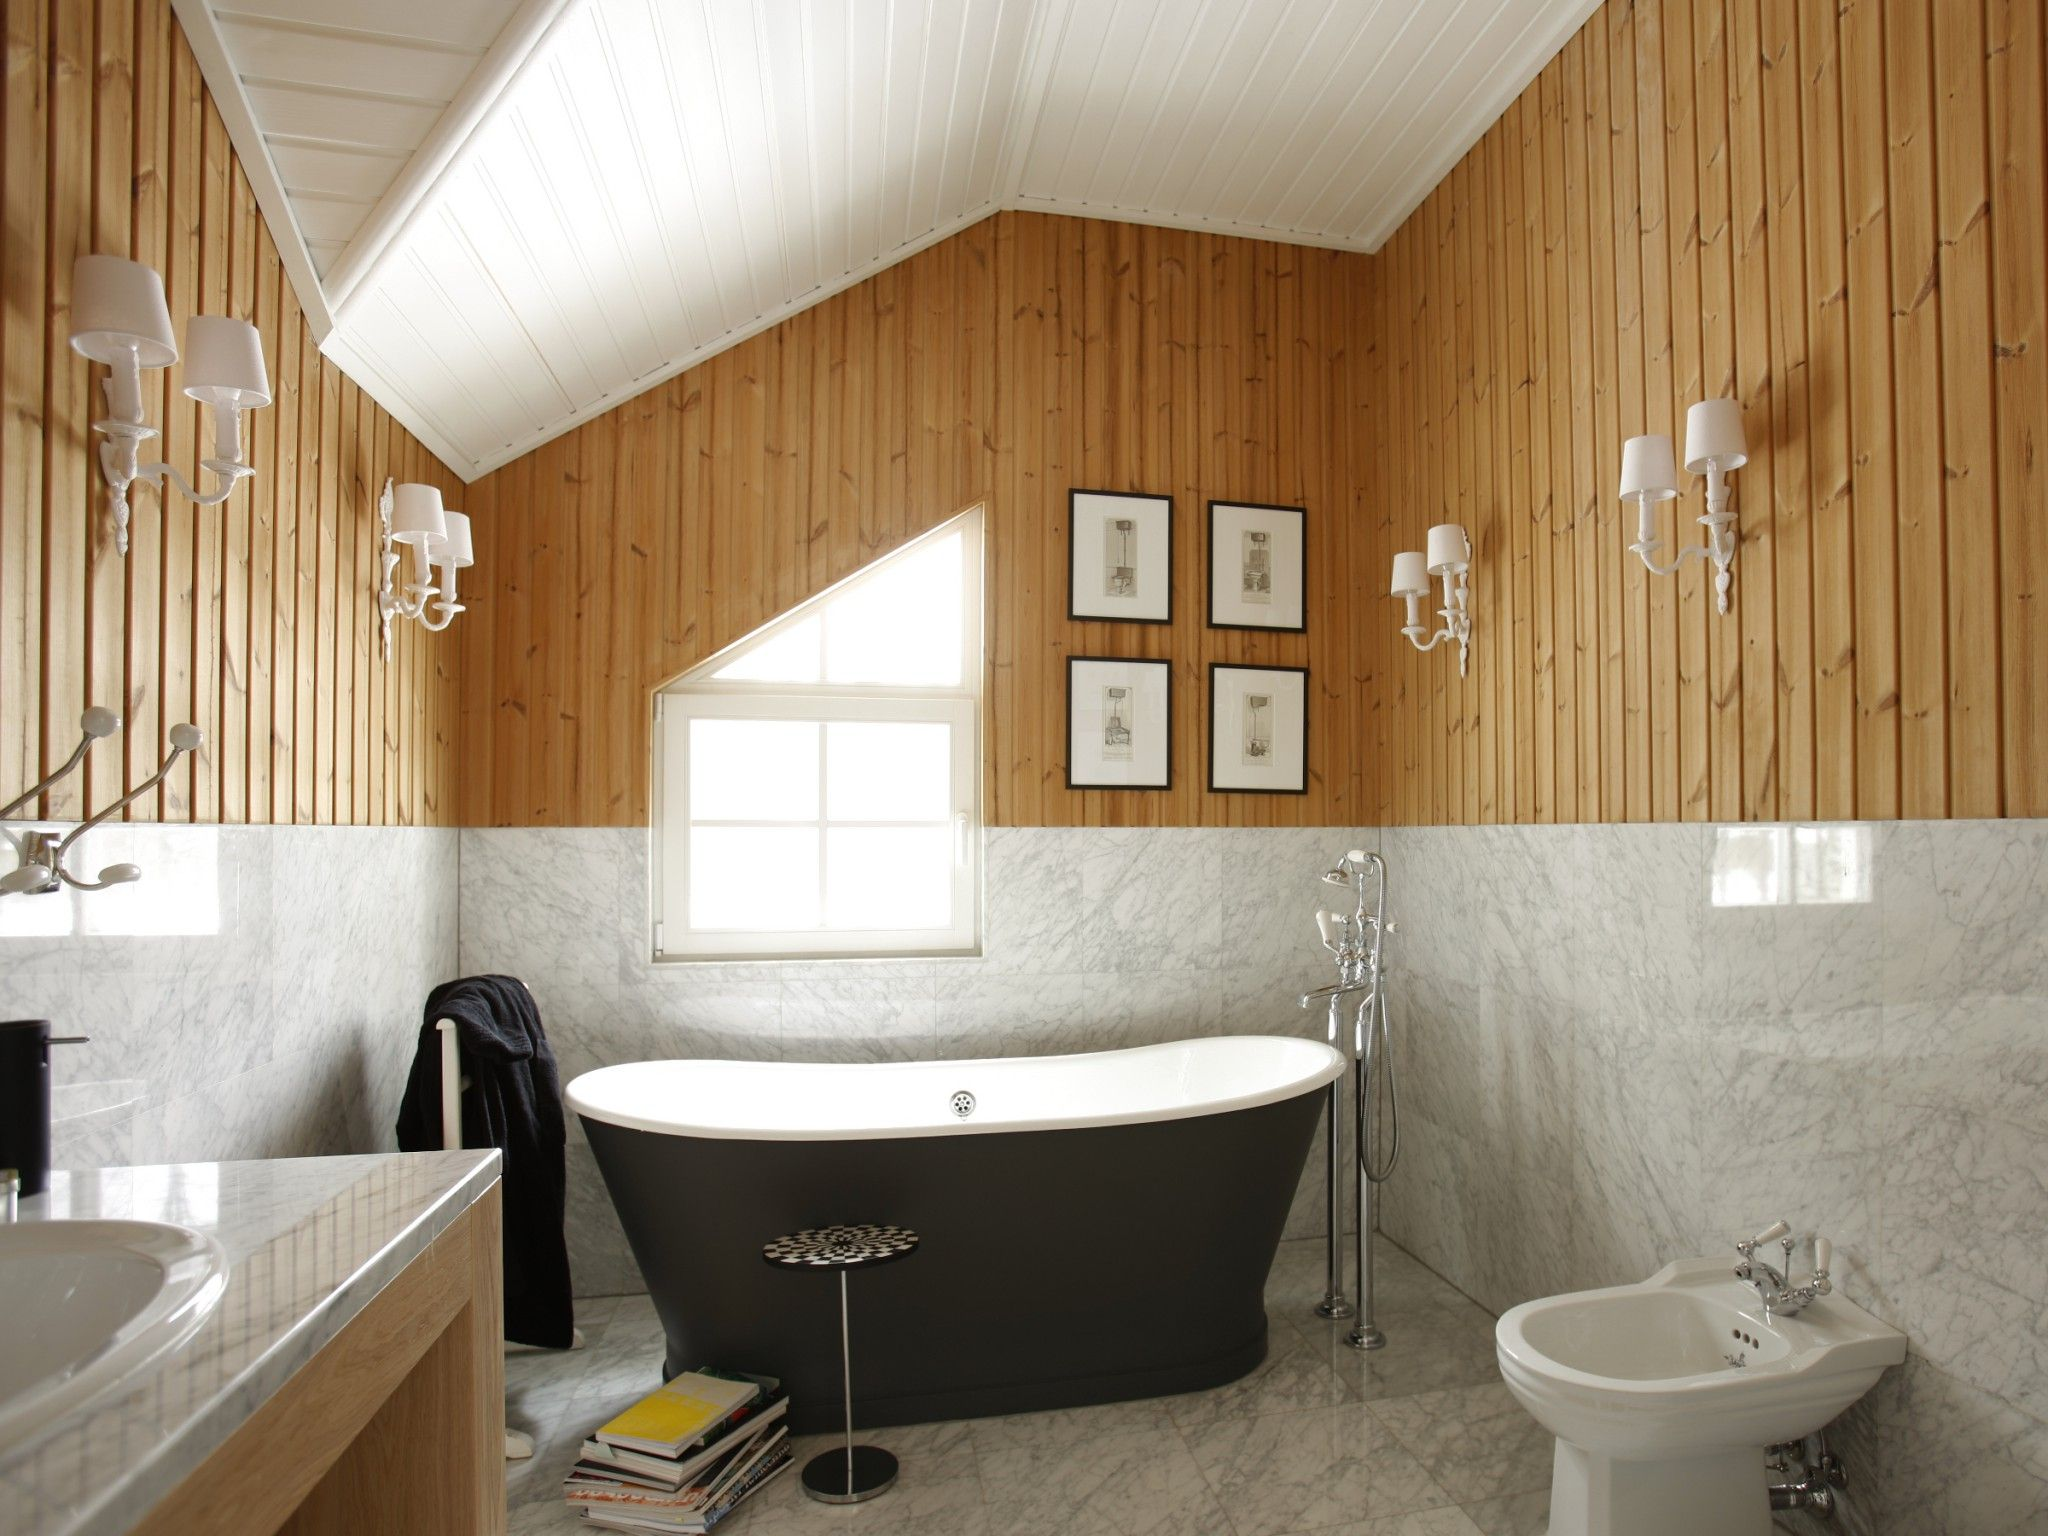 Small Design Ideas Of Bathroom In Country House